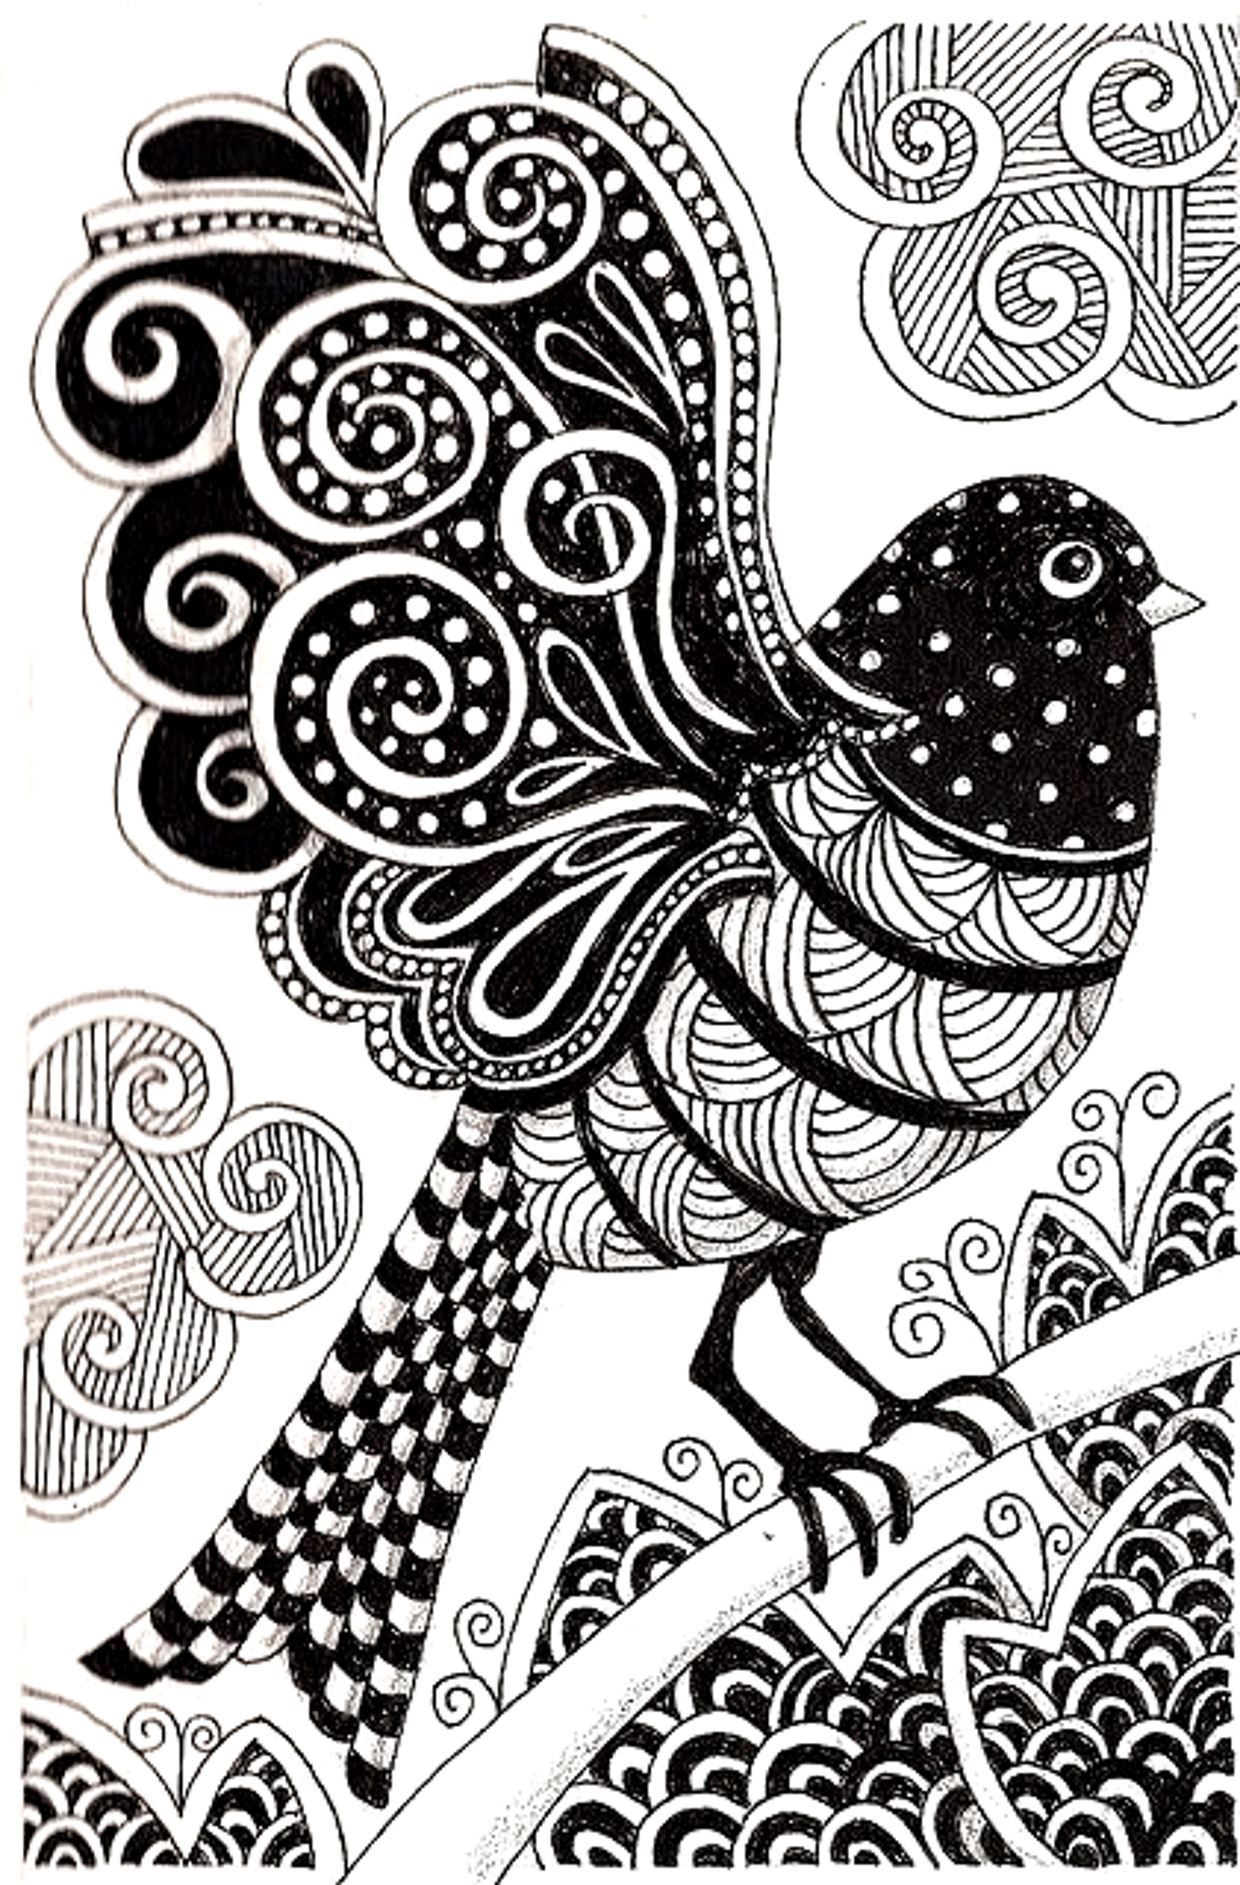 Dark Bird Drawing With Simple Zentangle Patterns